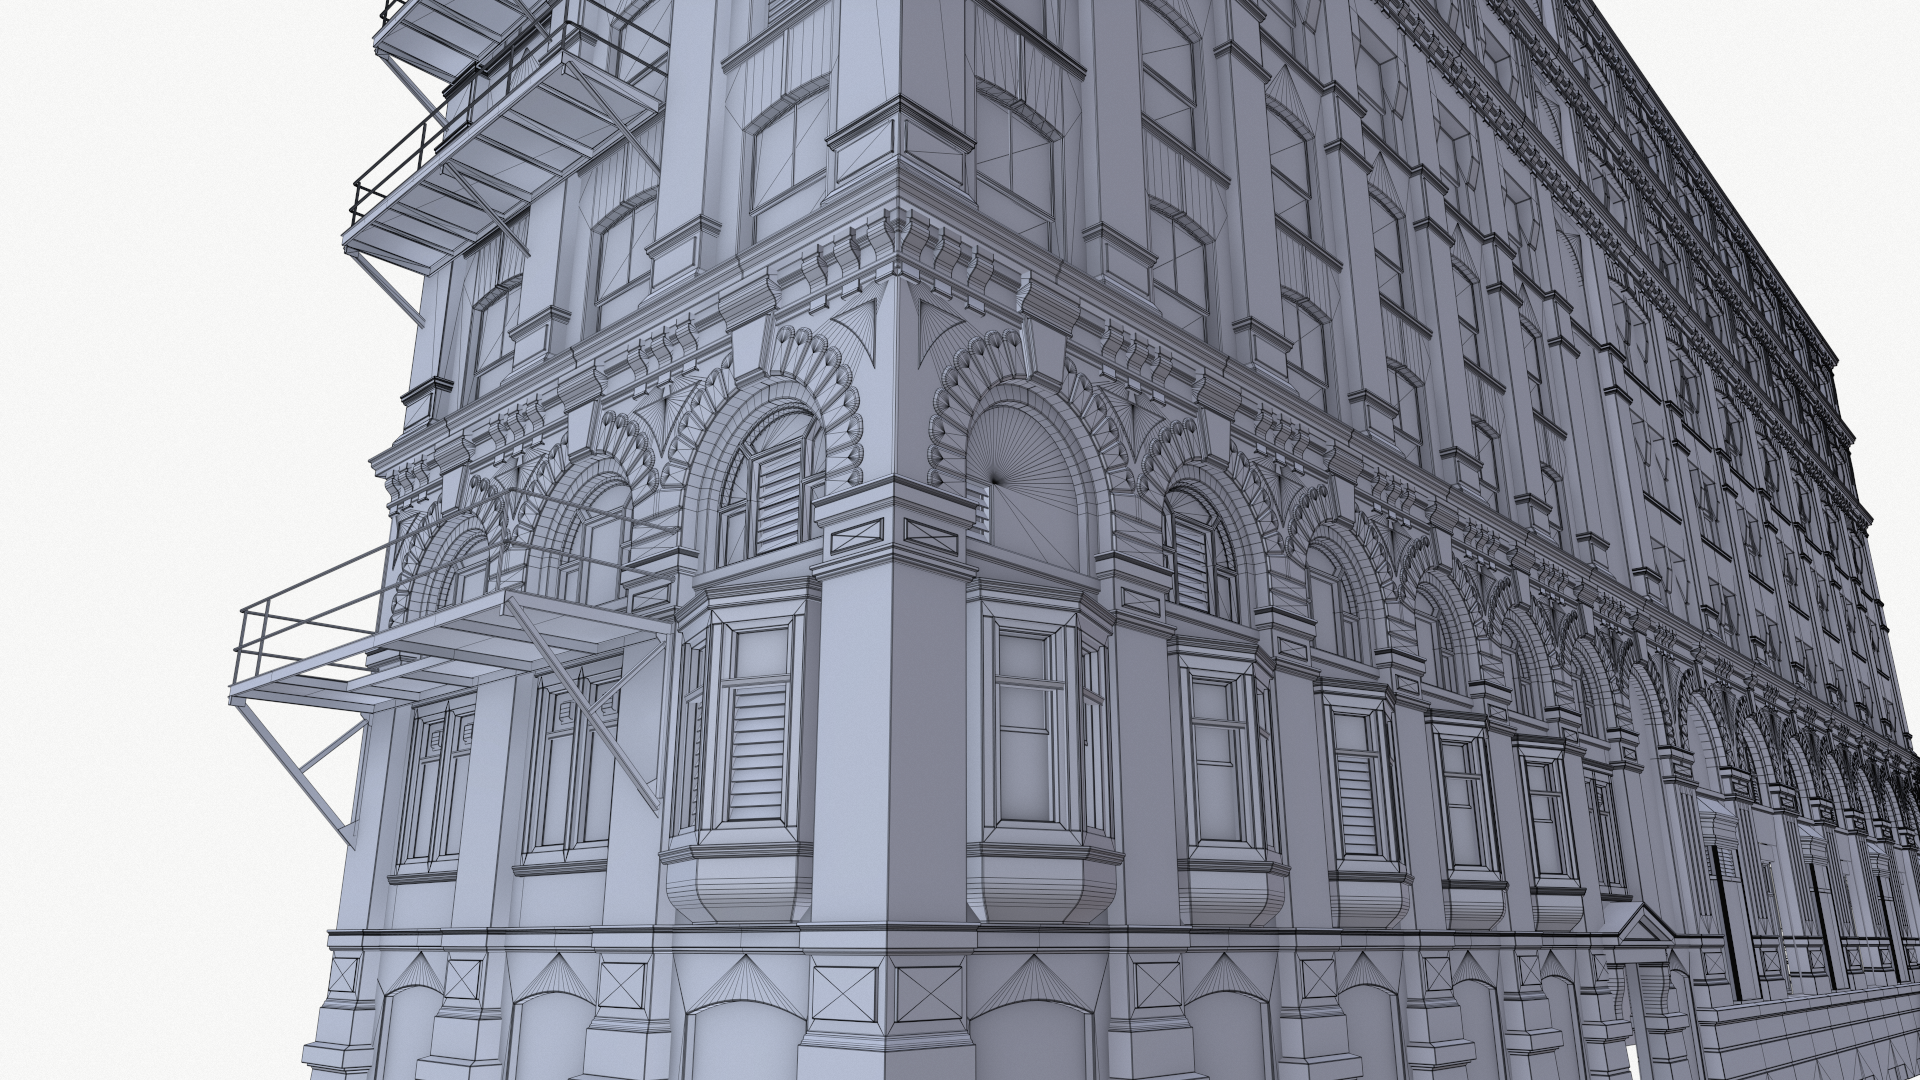 Detailed low-poly building modeling.